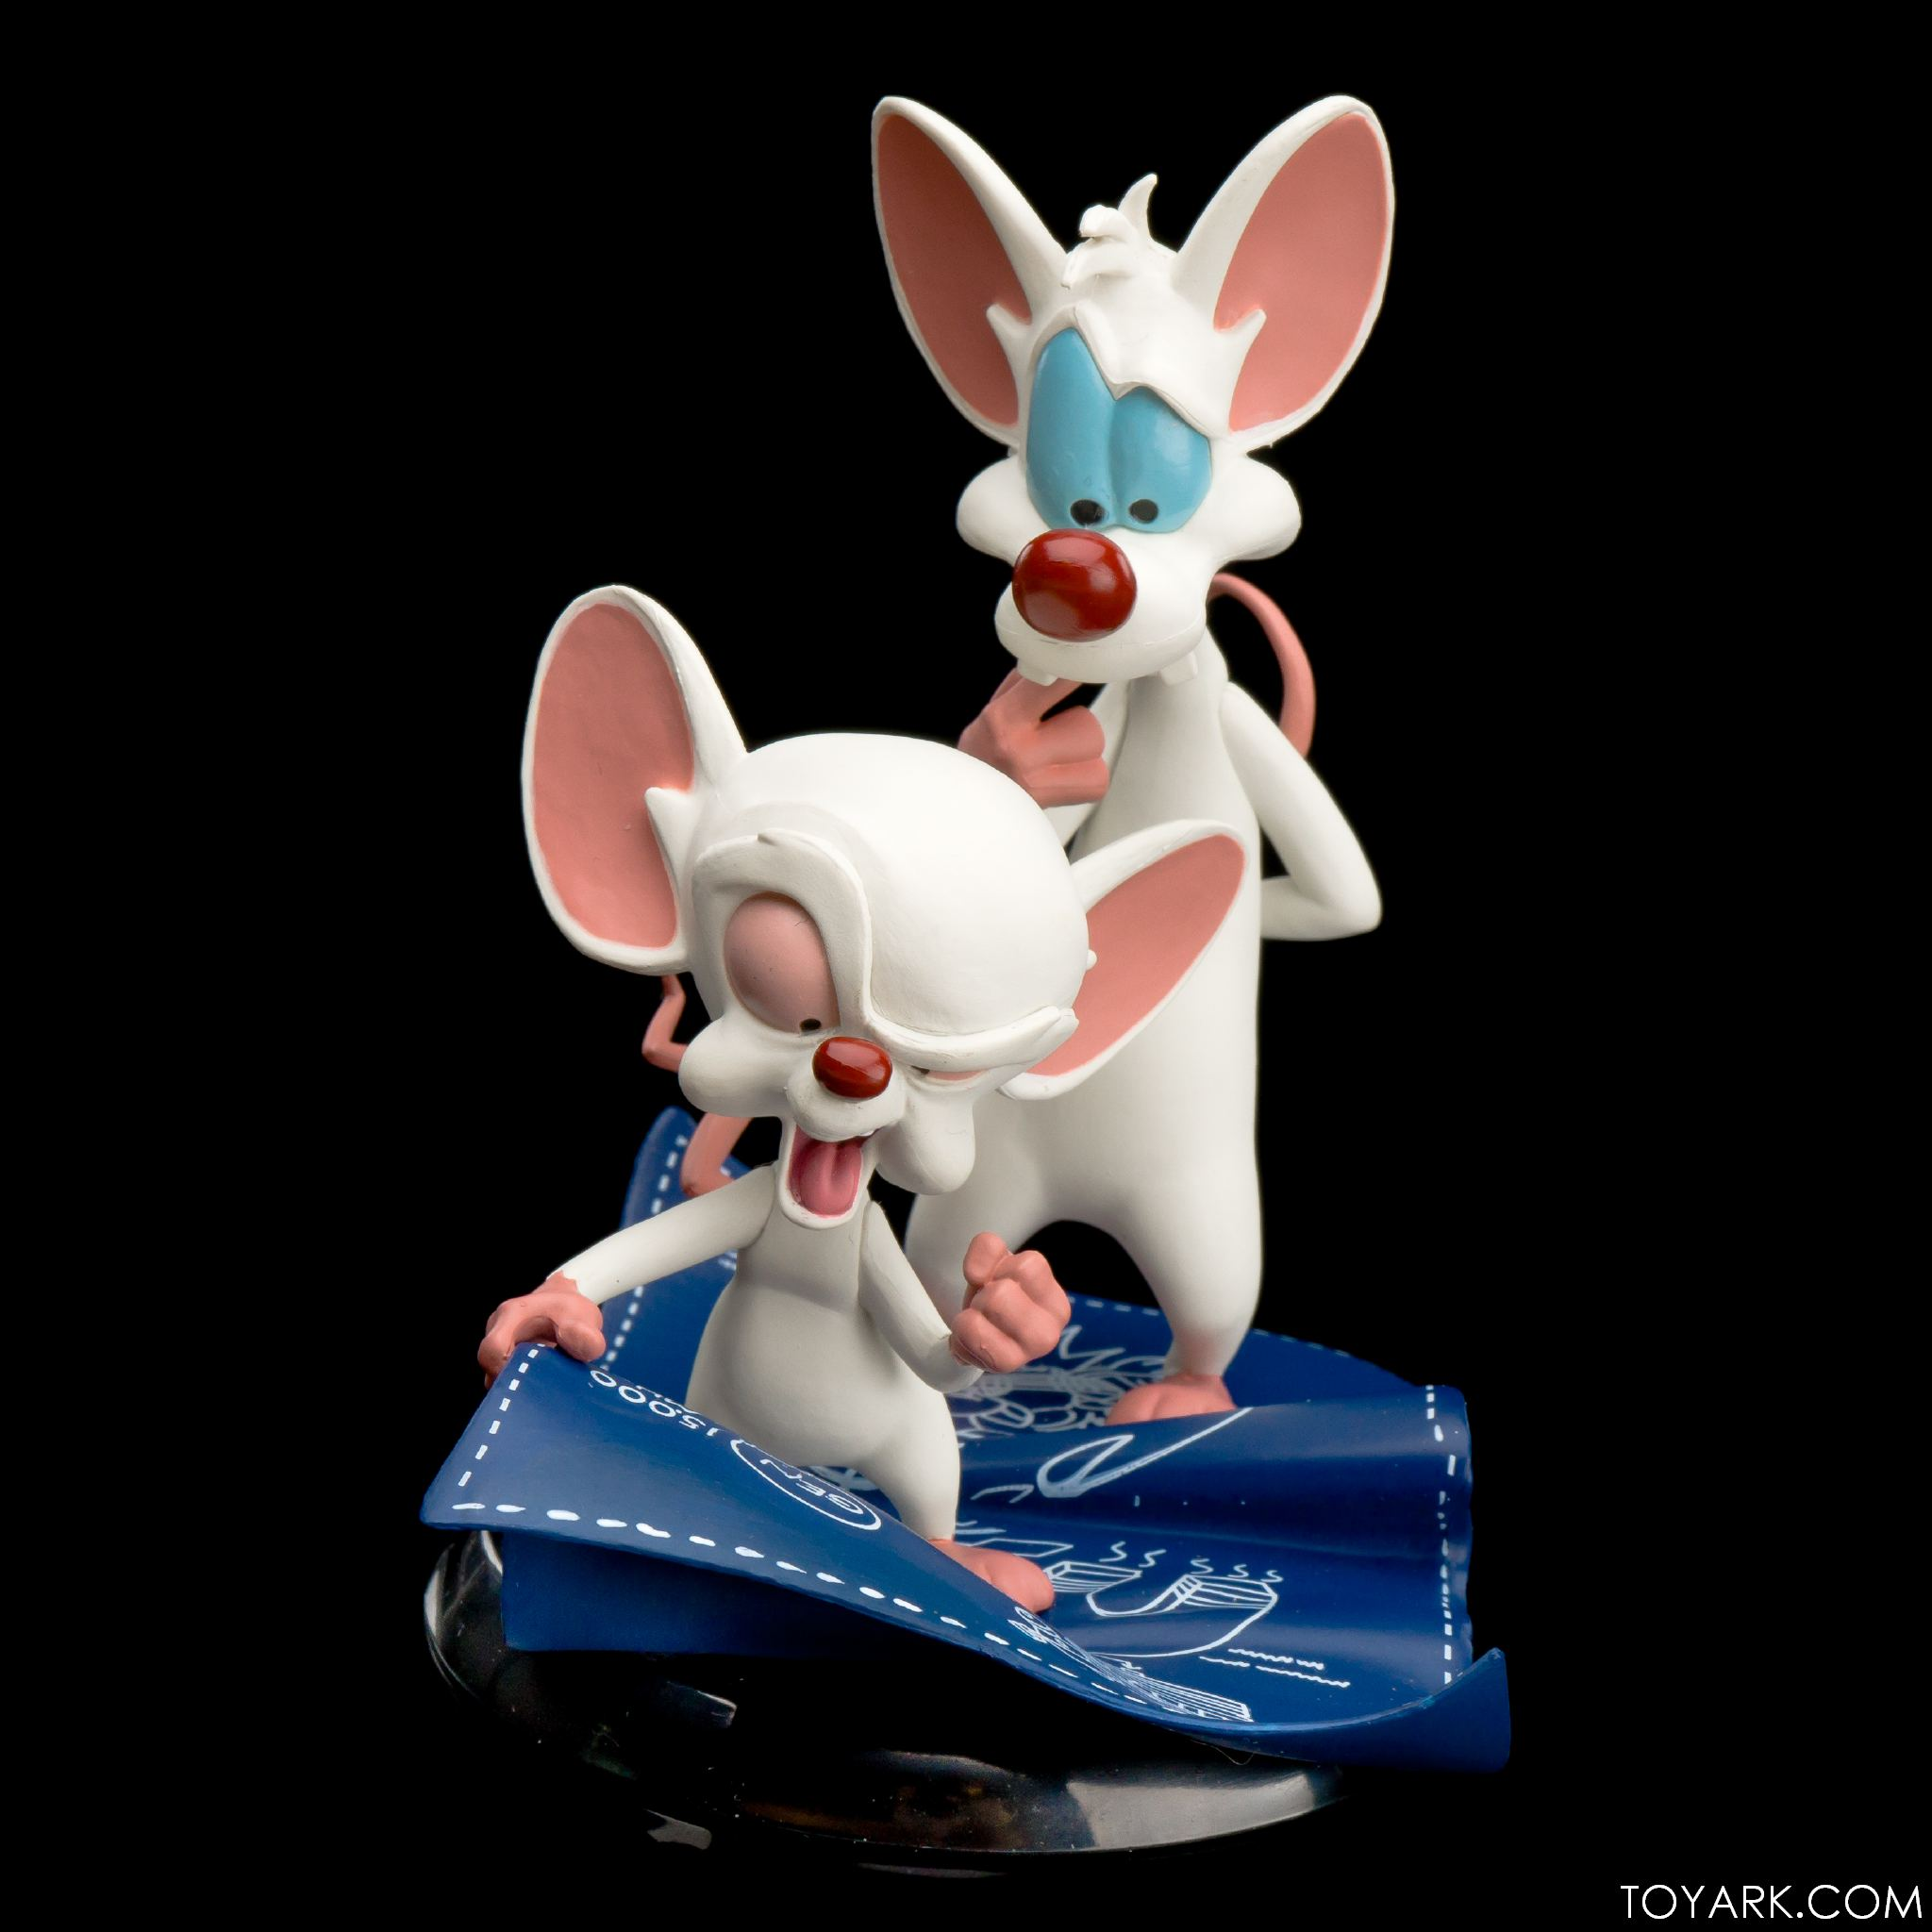 Qmx Pinky and the Brain vinyl figure